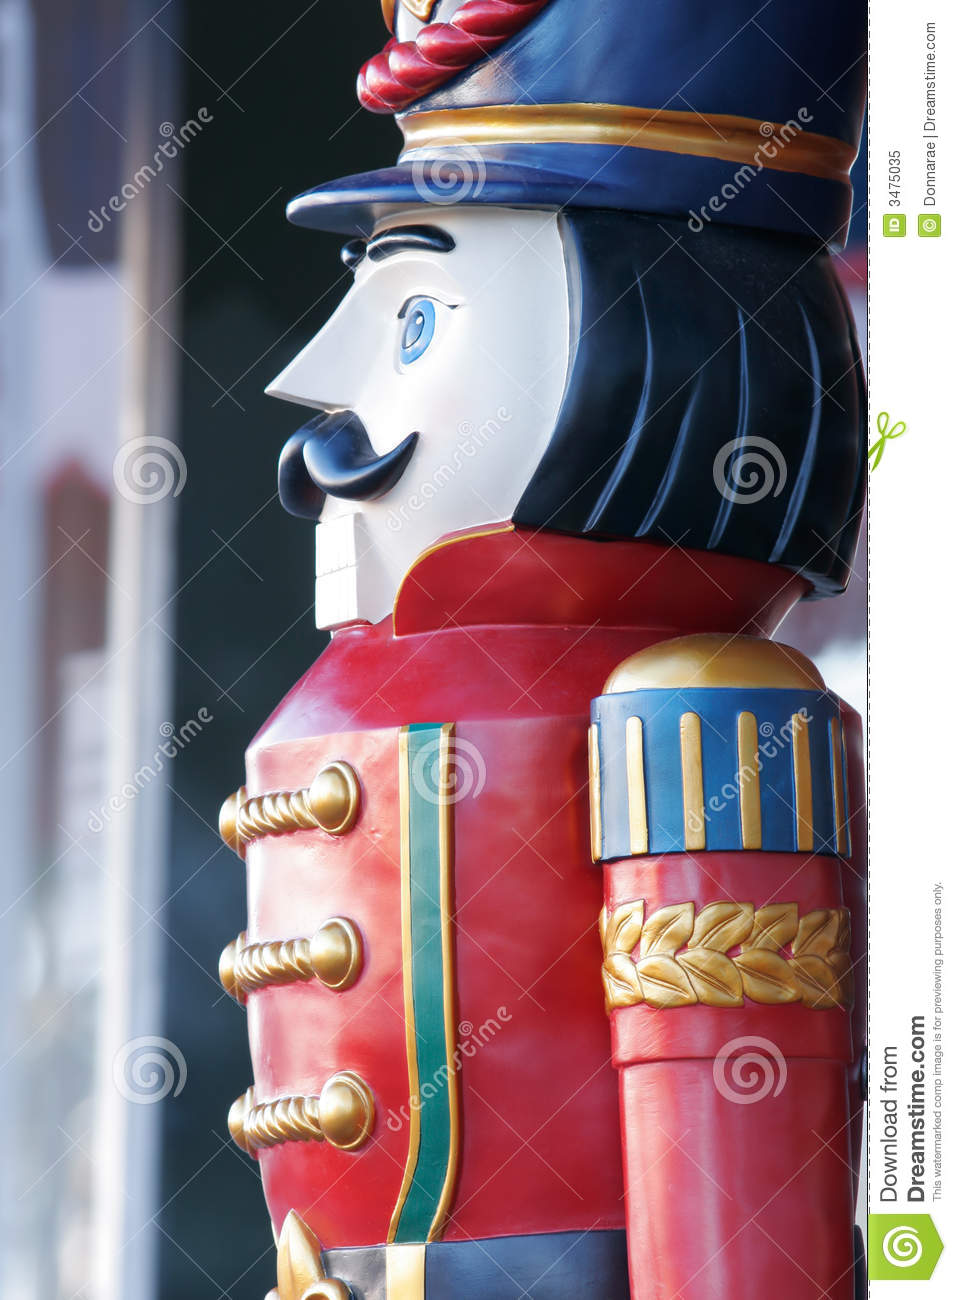 wooden soldier detail - Christmas Decorations Wooden Soldiers